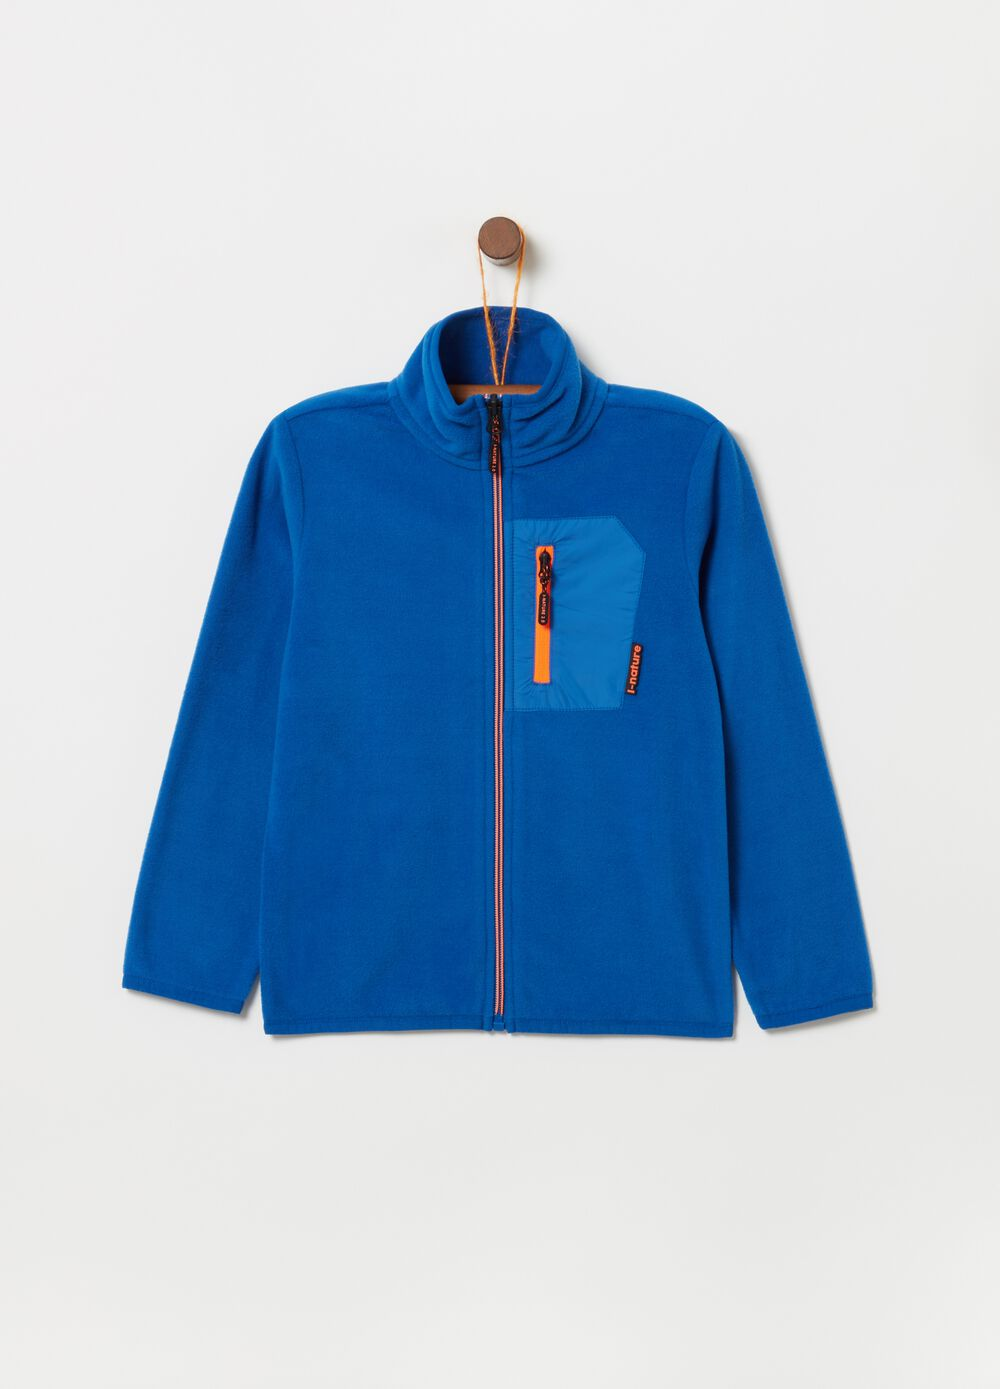 Sustainable fleece sweatshirt with zip pocket